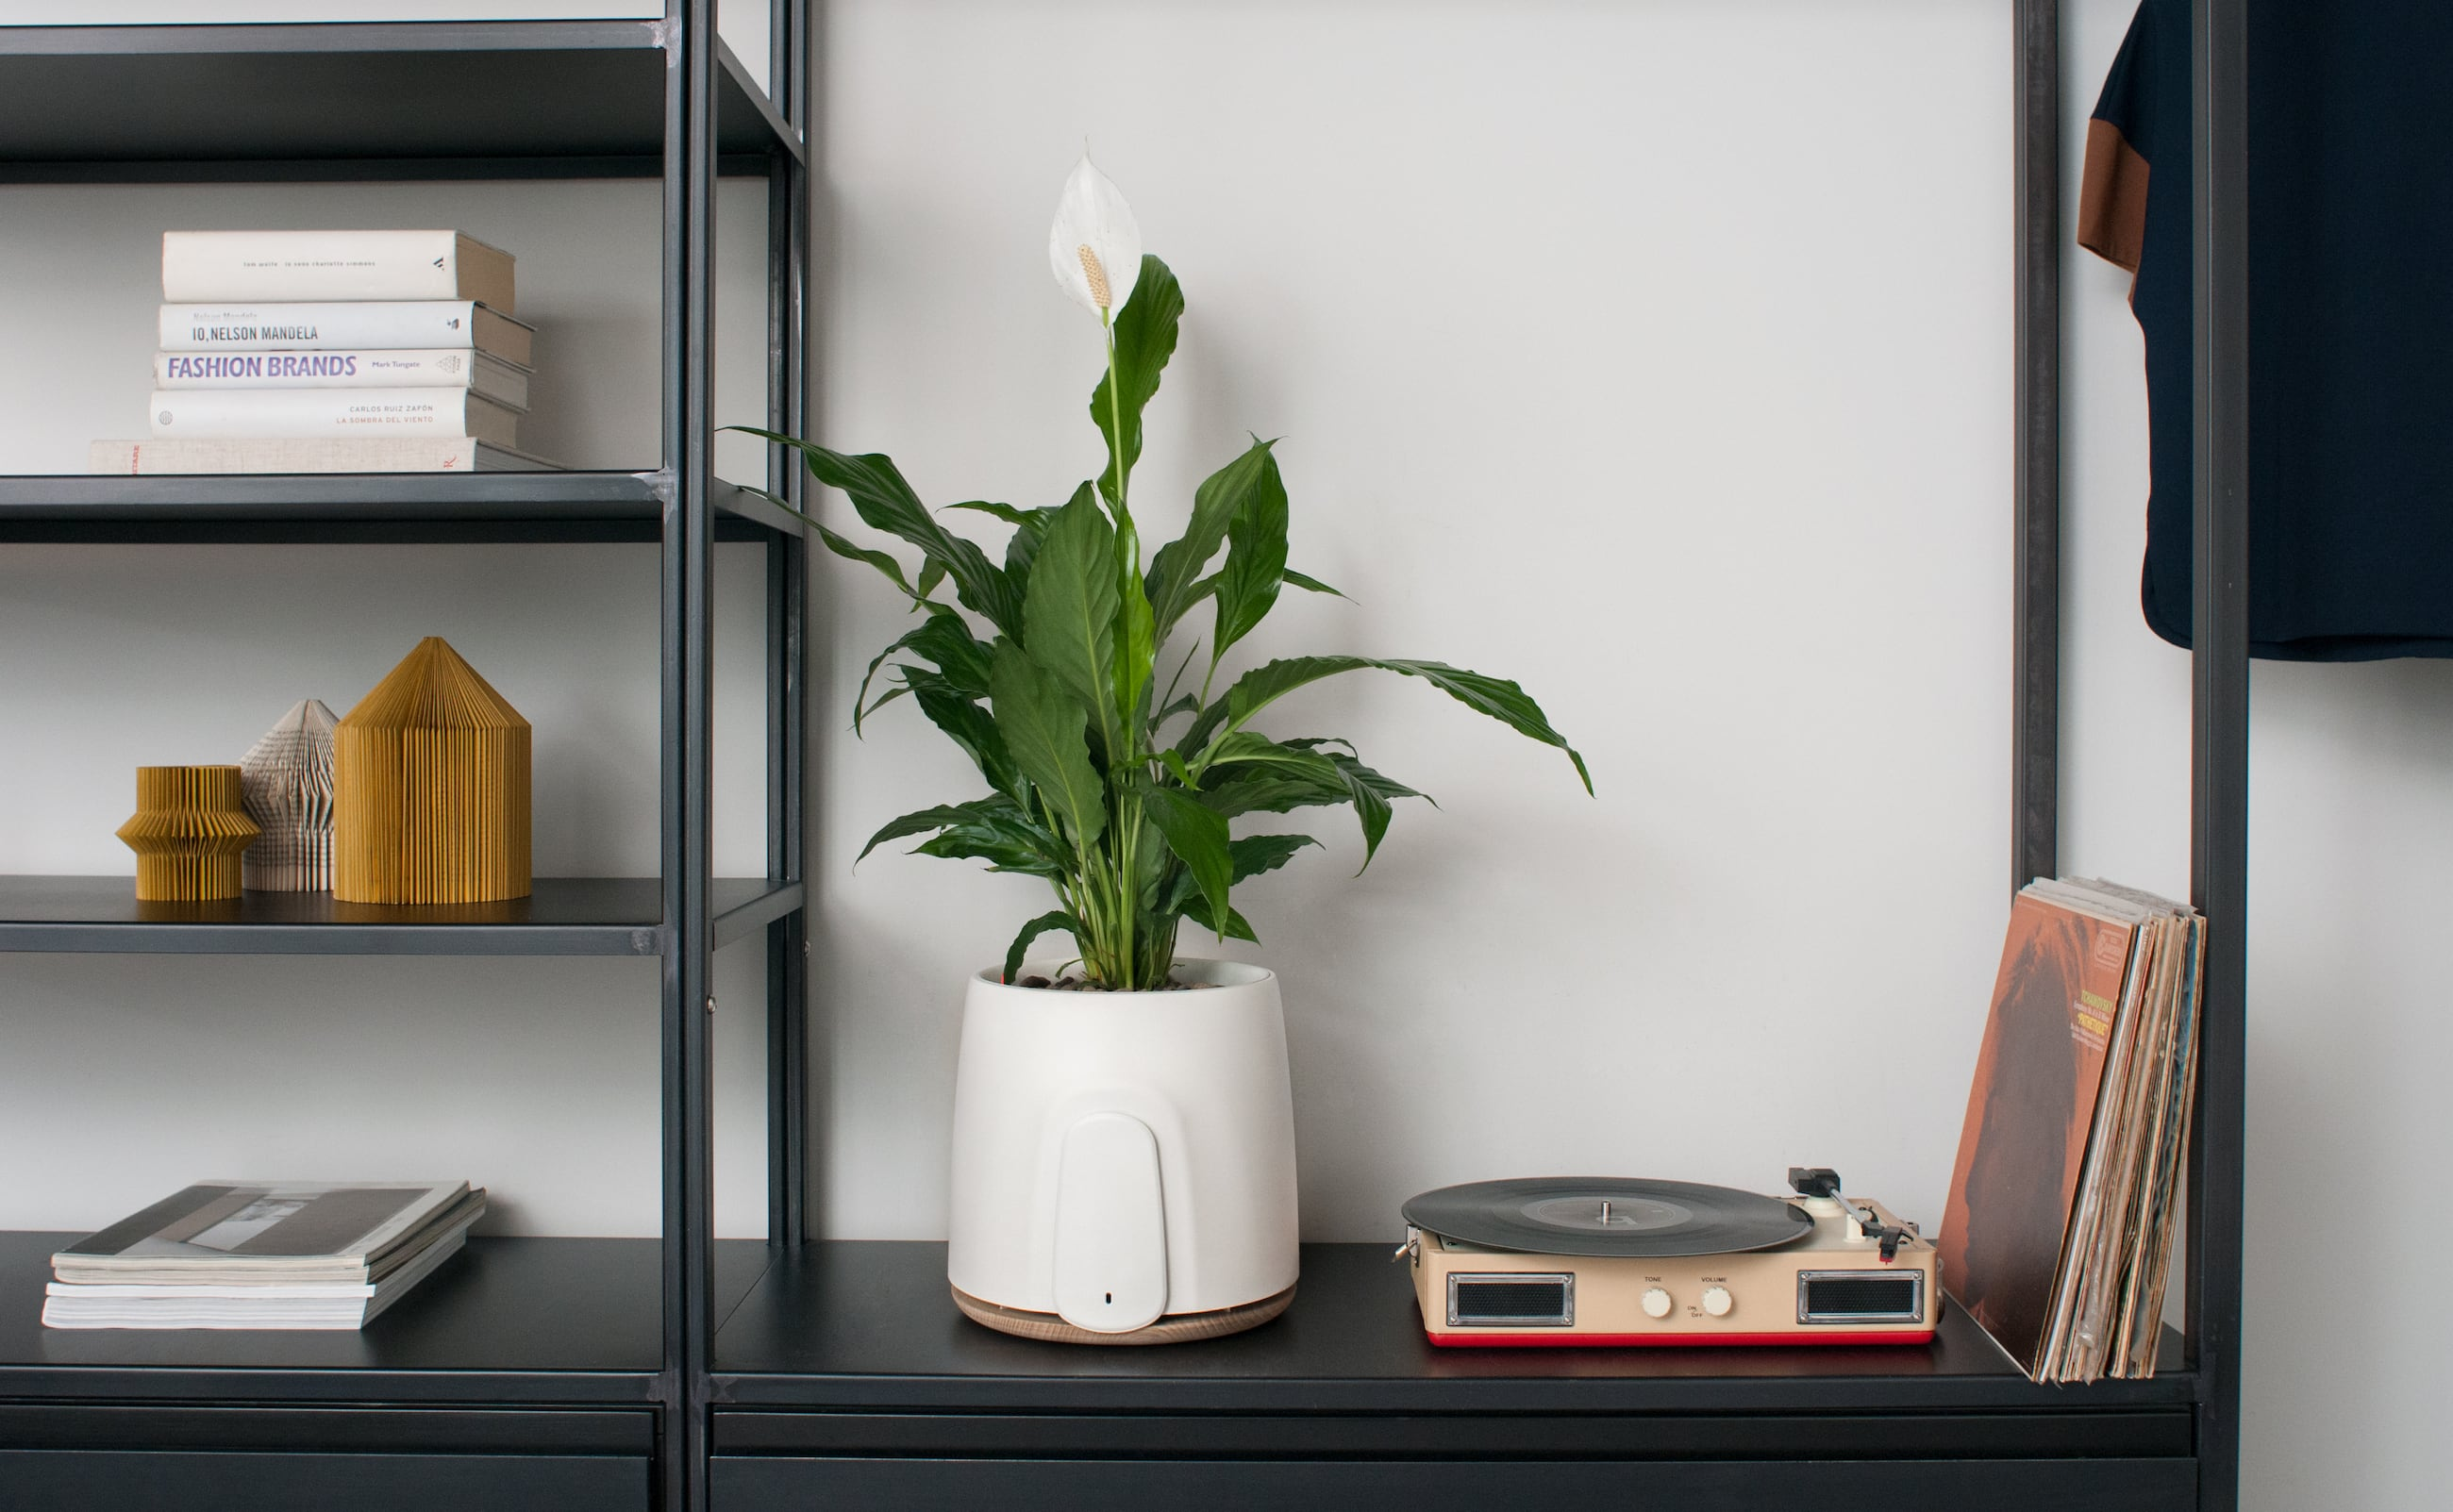 Natede Smart Natural Air Purifier eliminates bacteria and viruses in the air